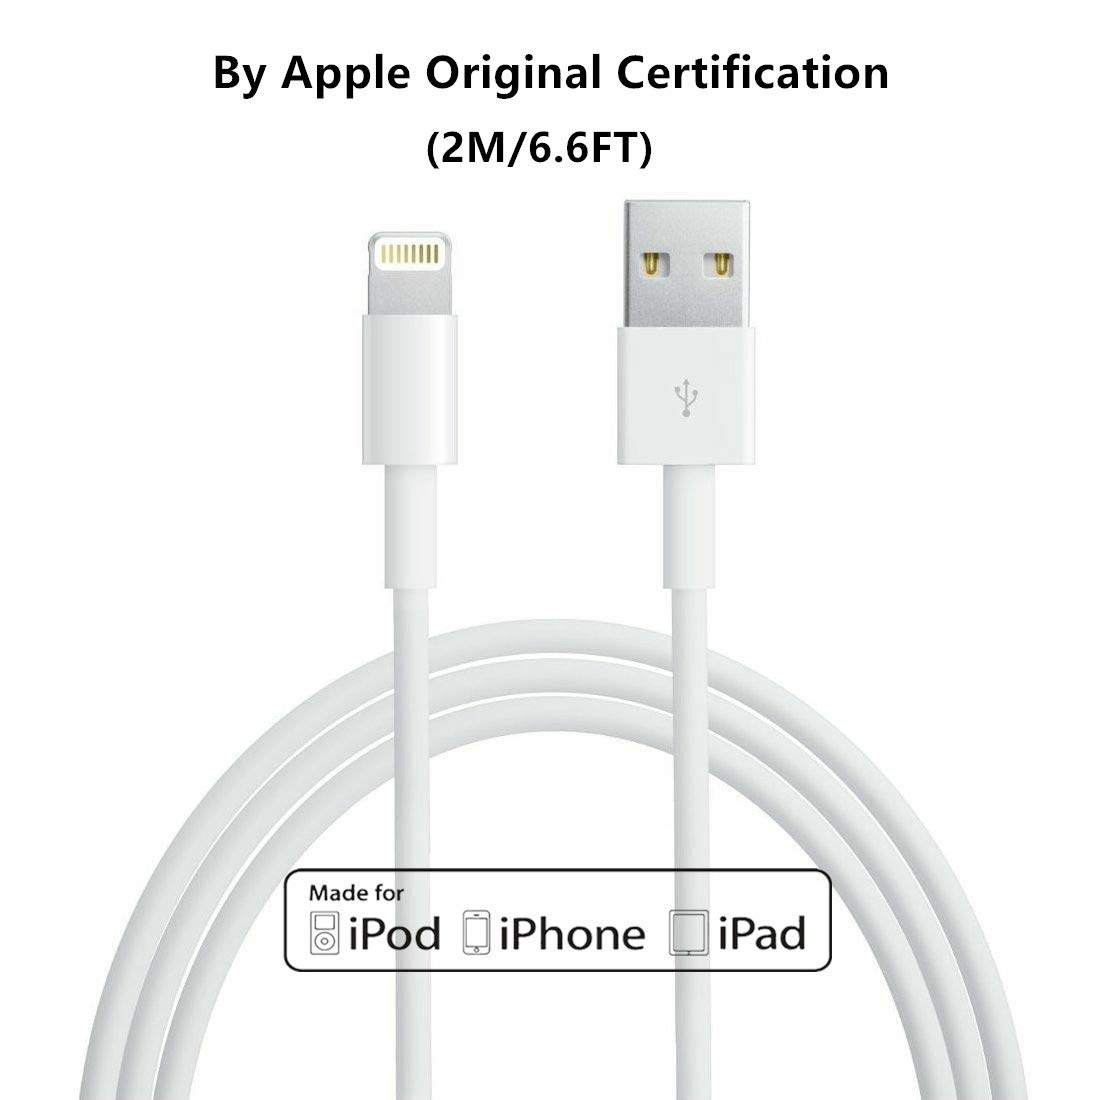 2M/6.6FT Apple Original Charger [Apple MFi Certified] Lightning to USB Cable Compatible iPhone Xs/X/8/7/6s/6/6 plus/5s/5/SE,iPad Pro/Air/Mini,iPod Touch Original Certified(White)